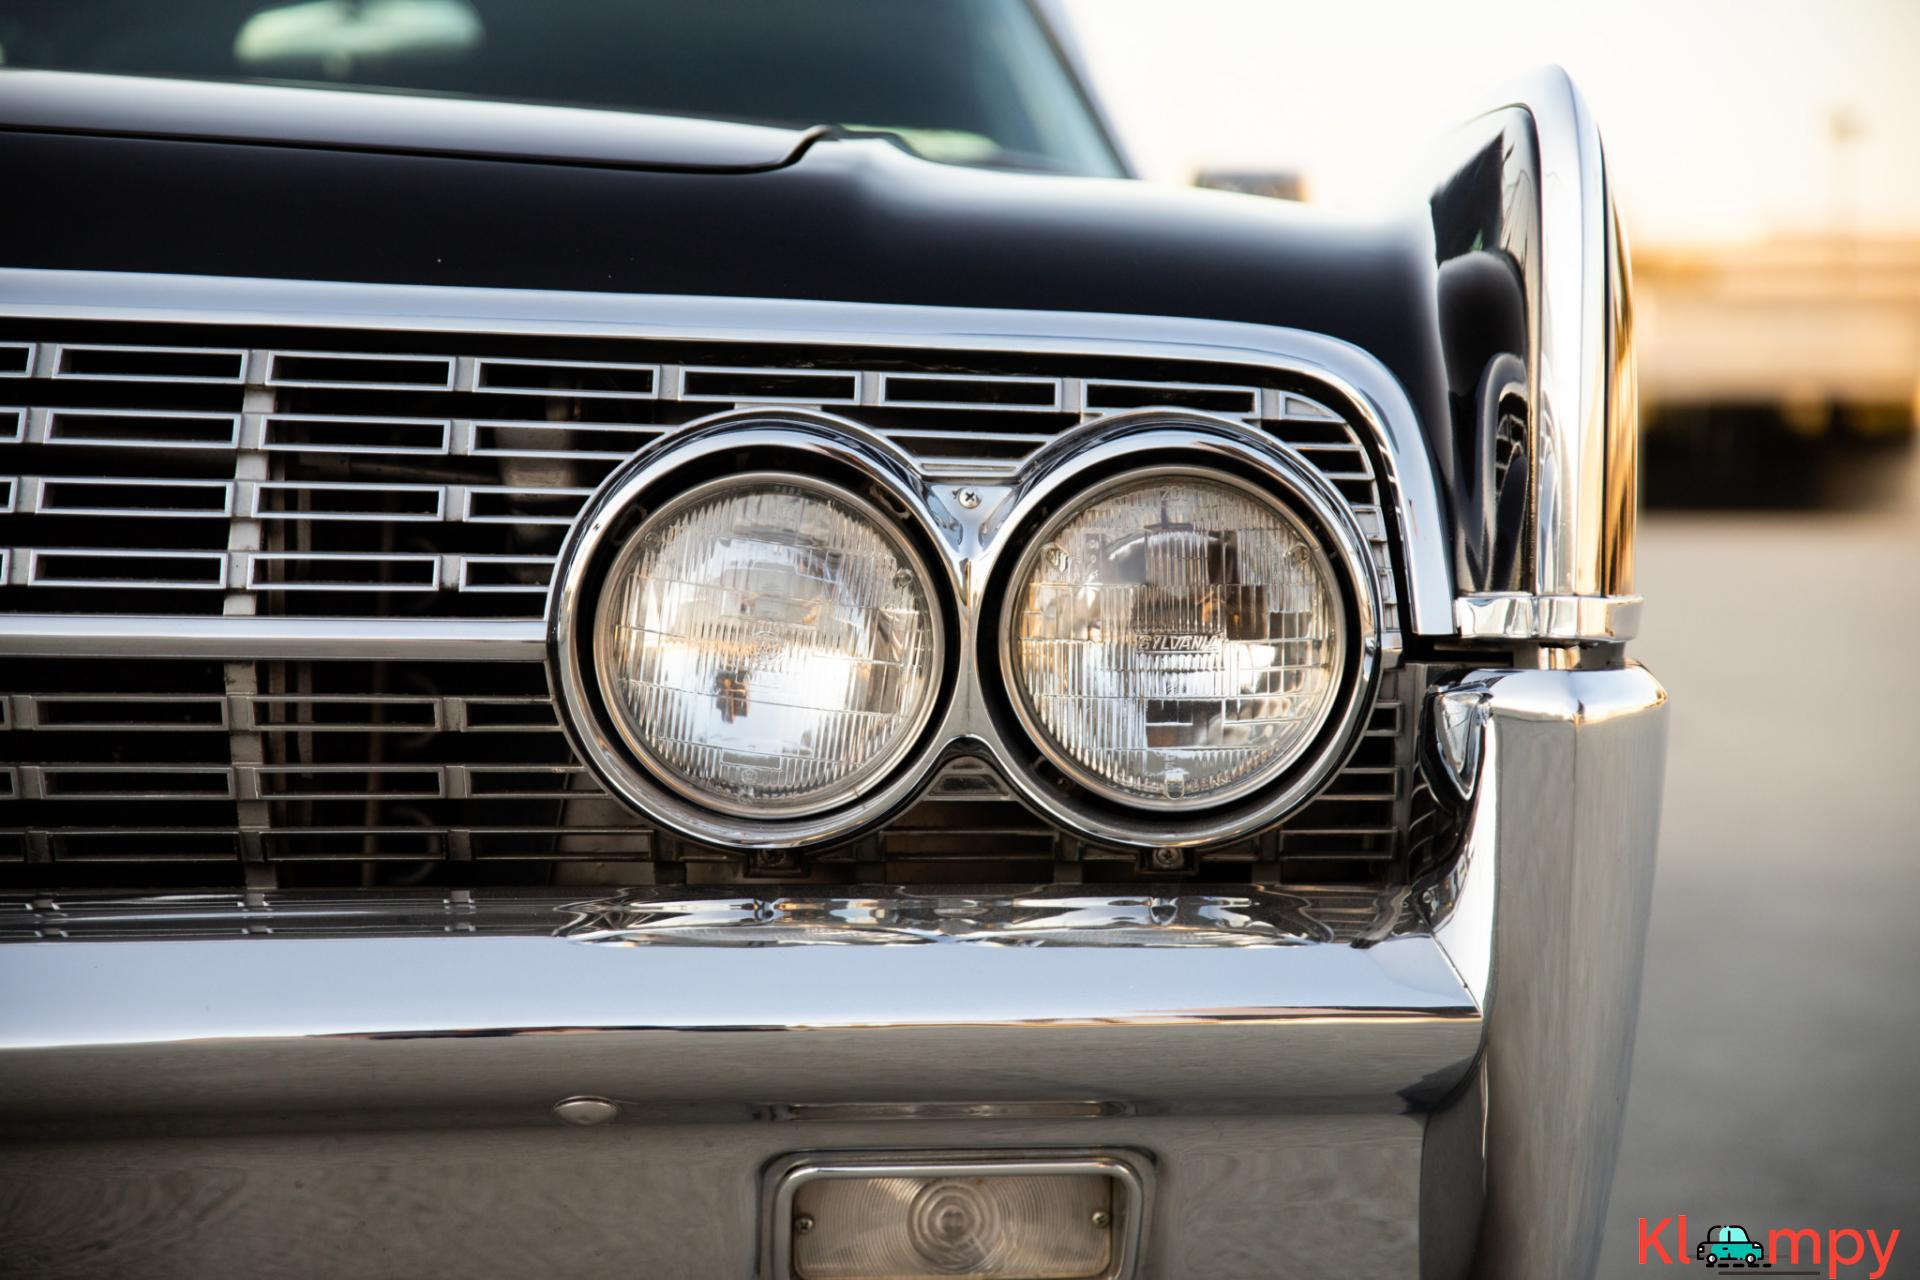 1962 Lincoln Continental Presidential Black - 15/19